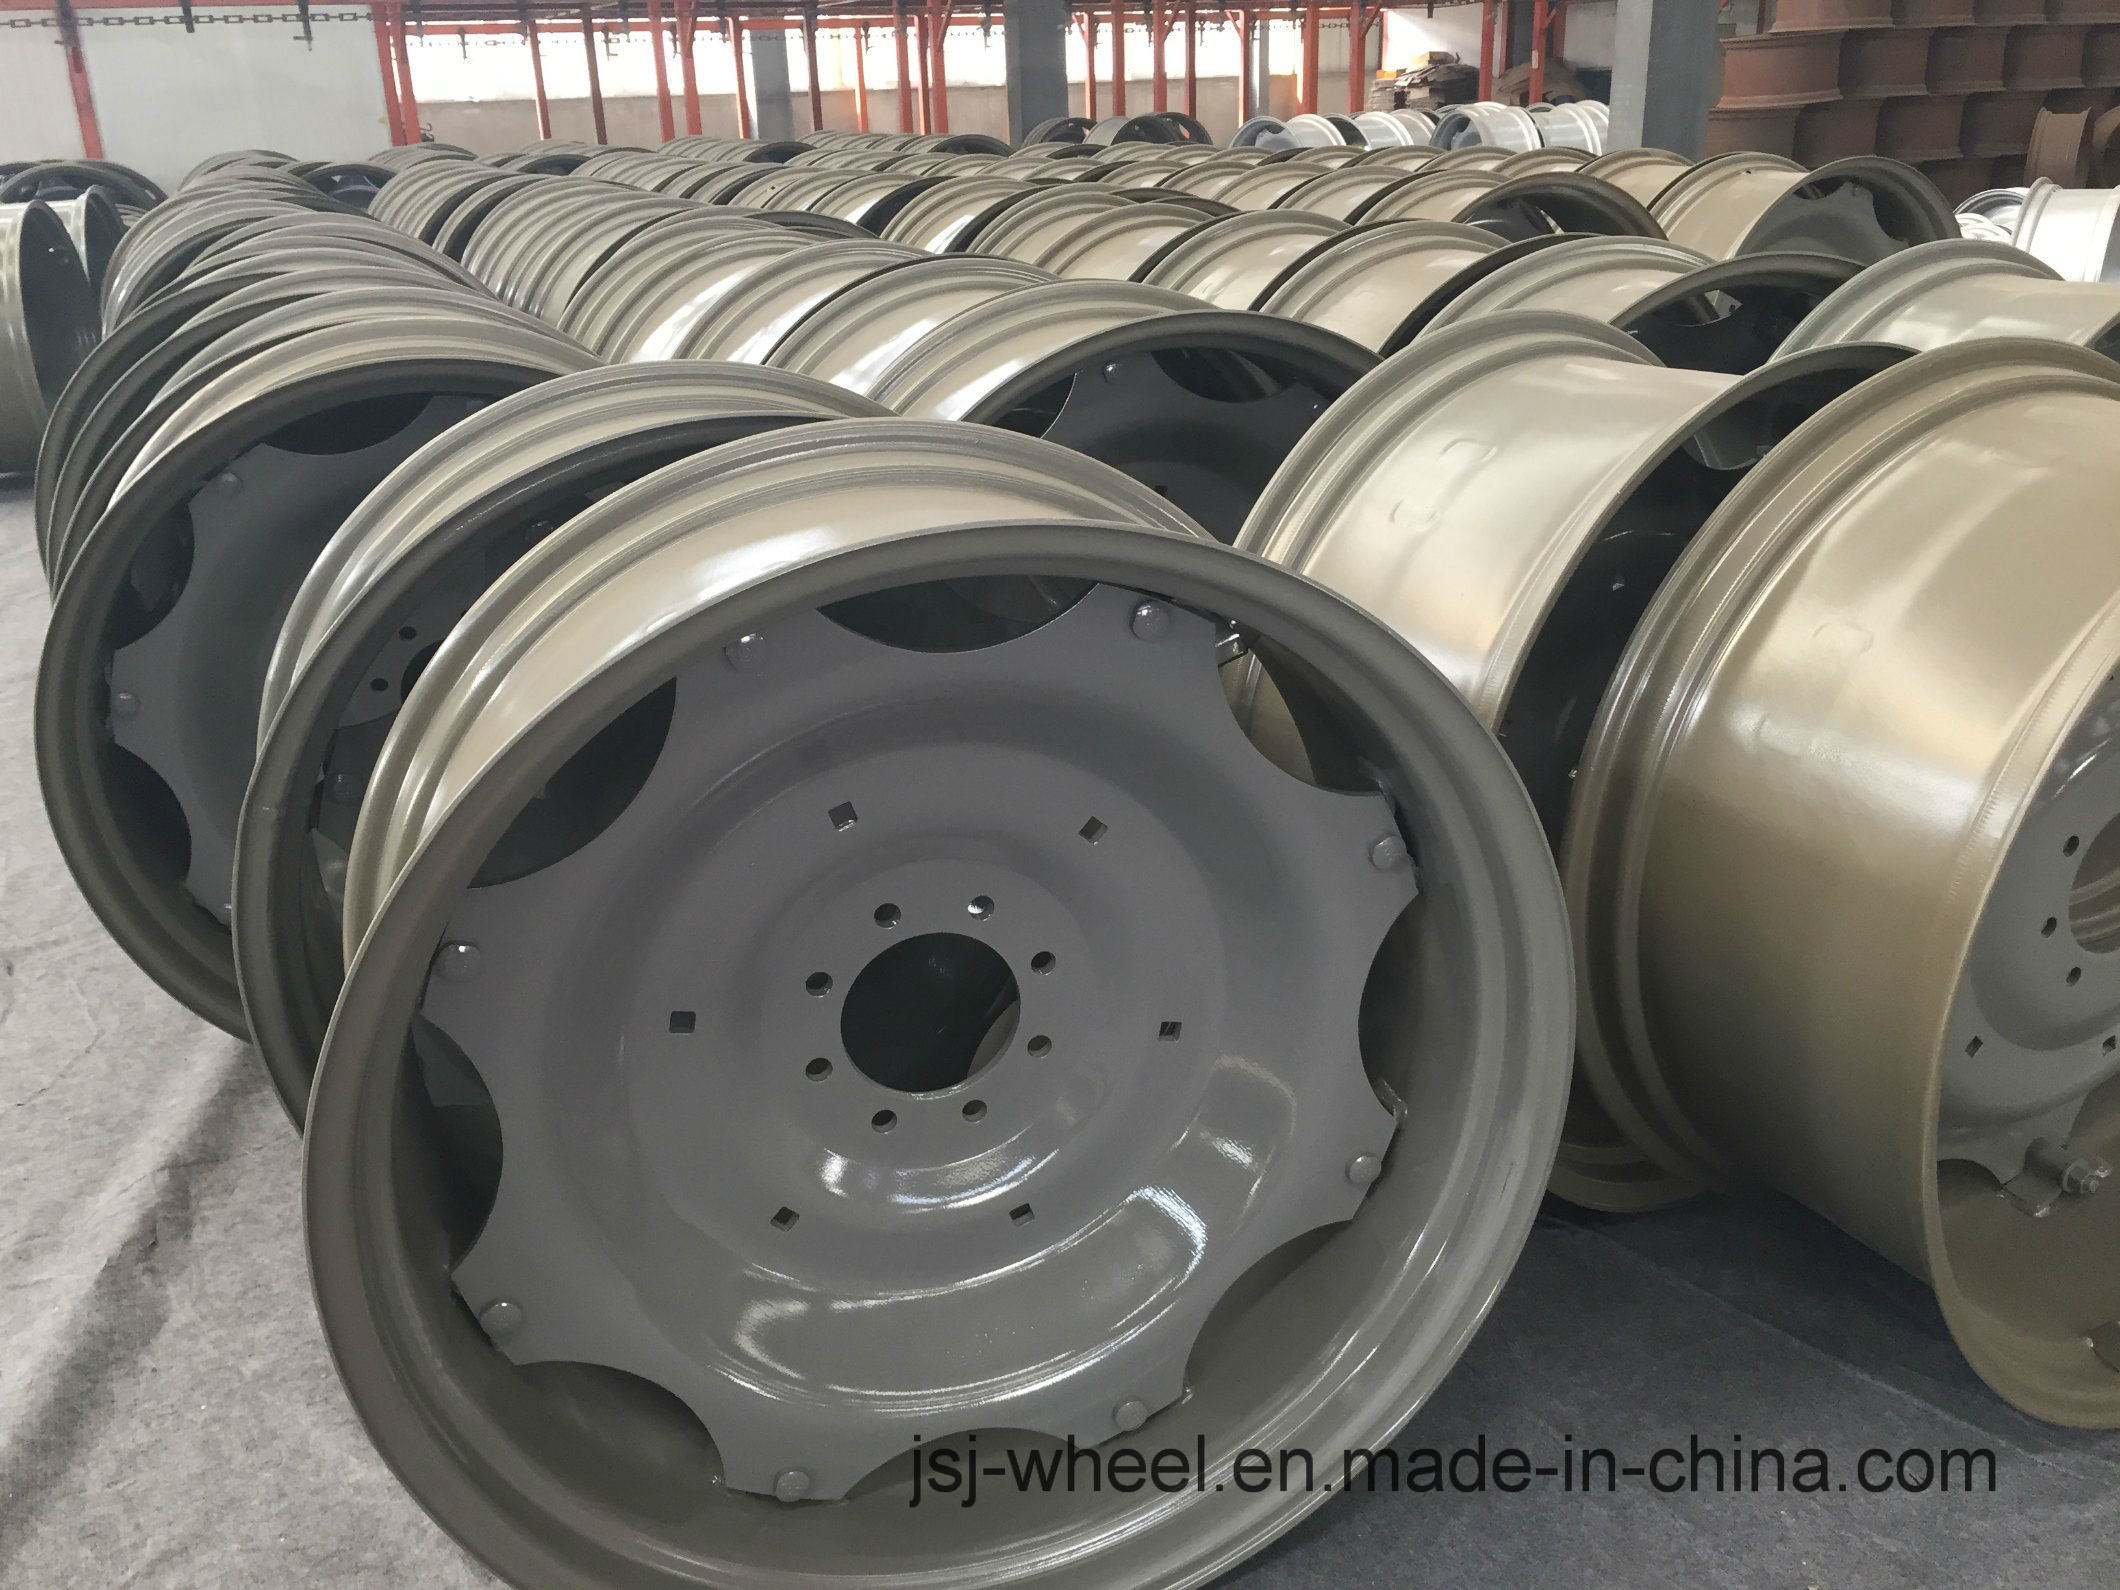 Wheel Rims for Tractor/Harvest/Machineshop Truck/Irrigation System-16